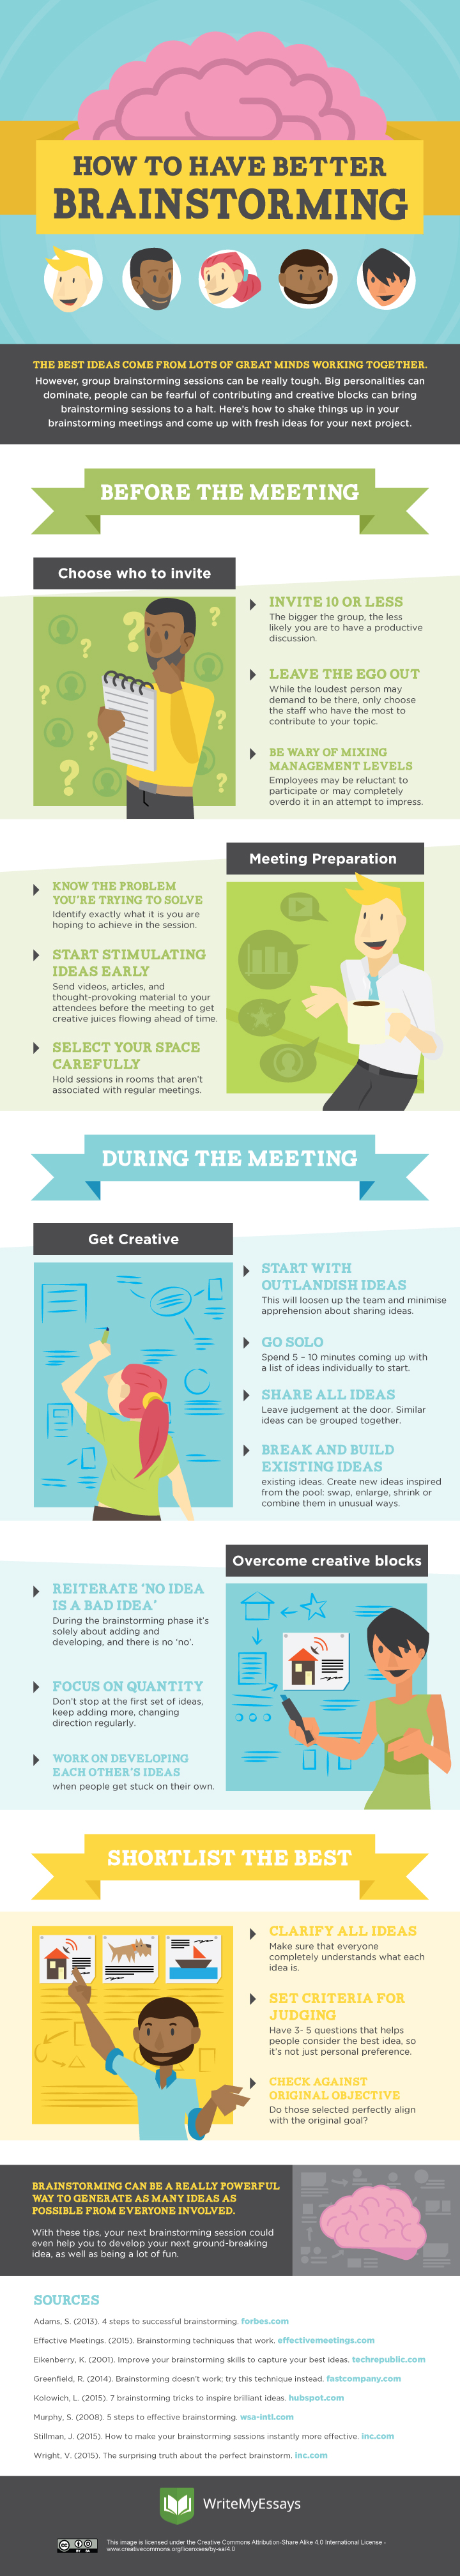 16 Ways to Improve Your Brainstorming Sessions